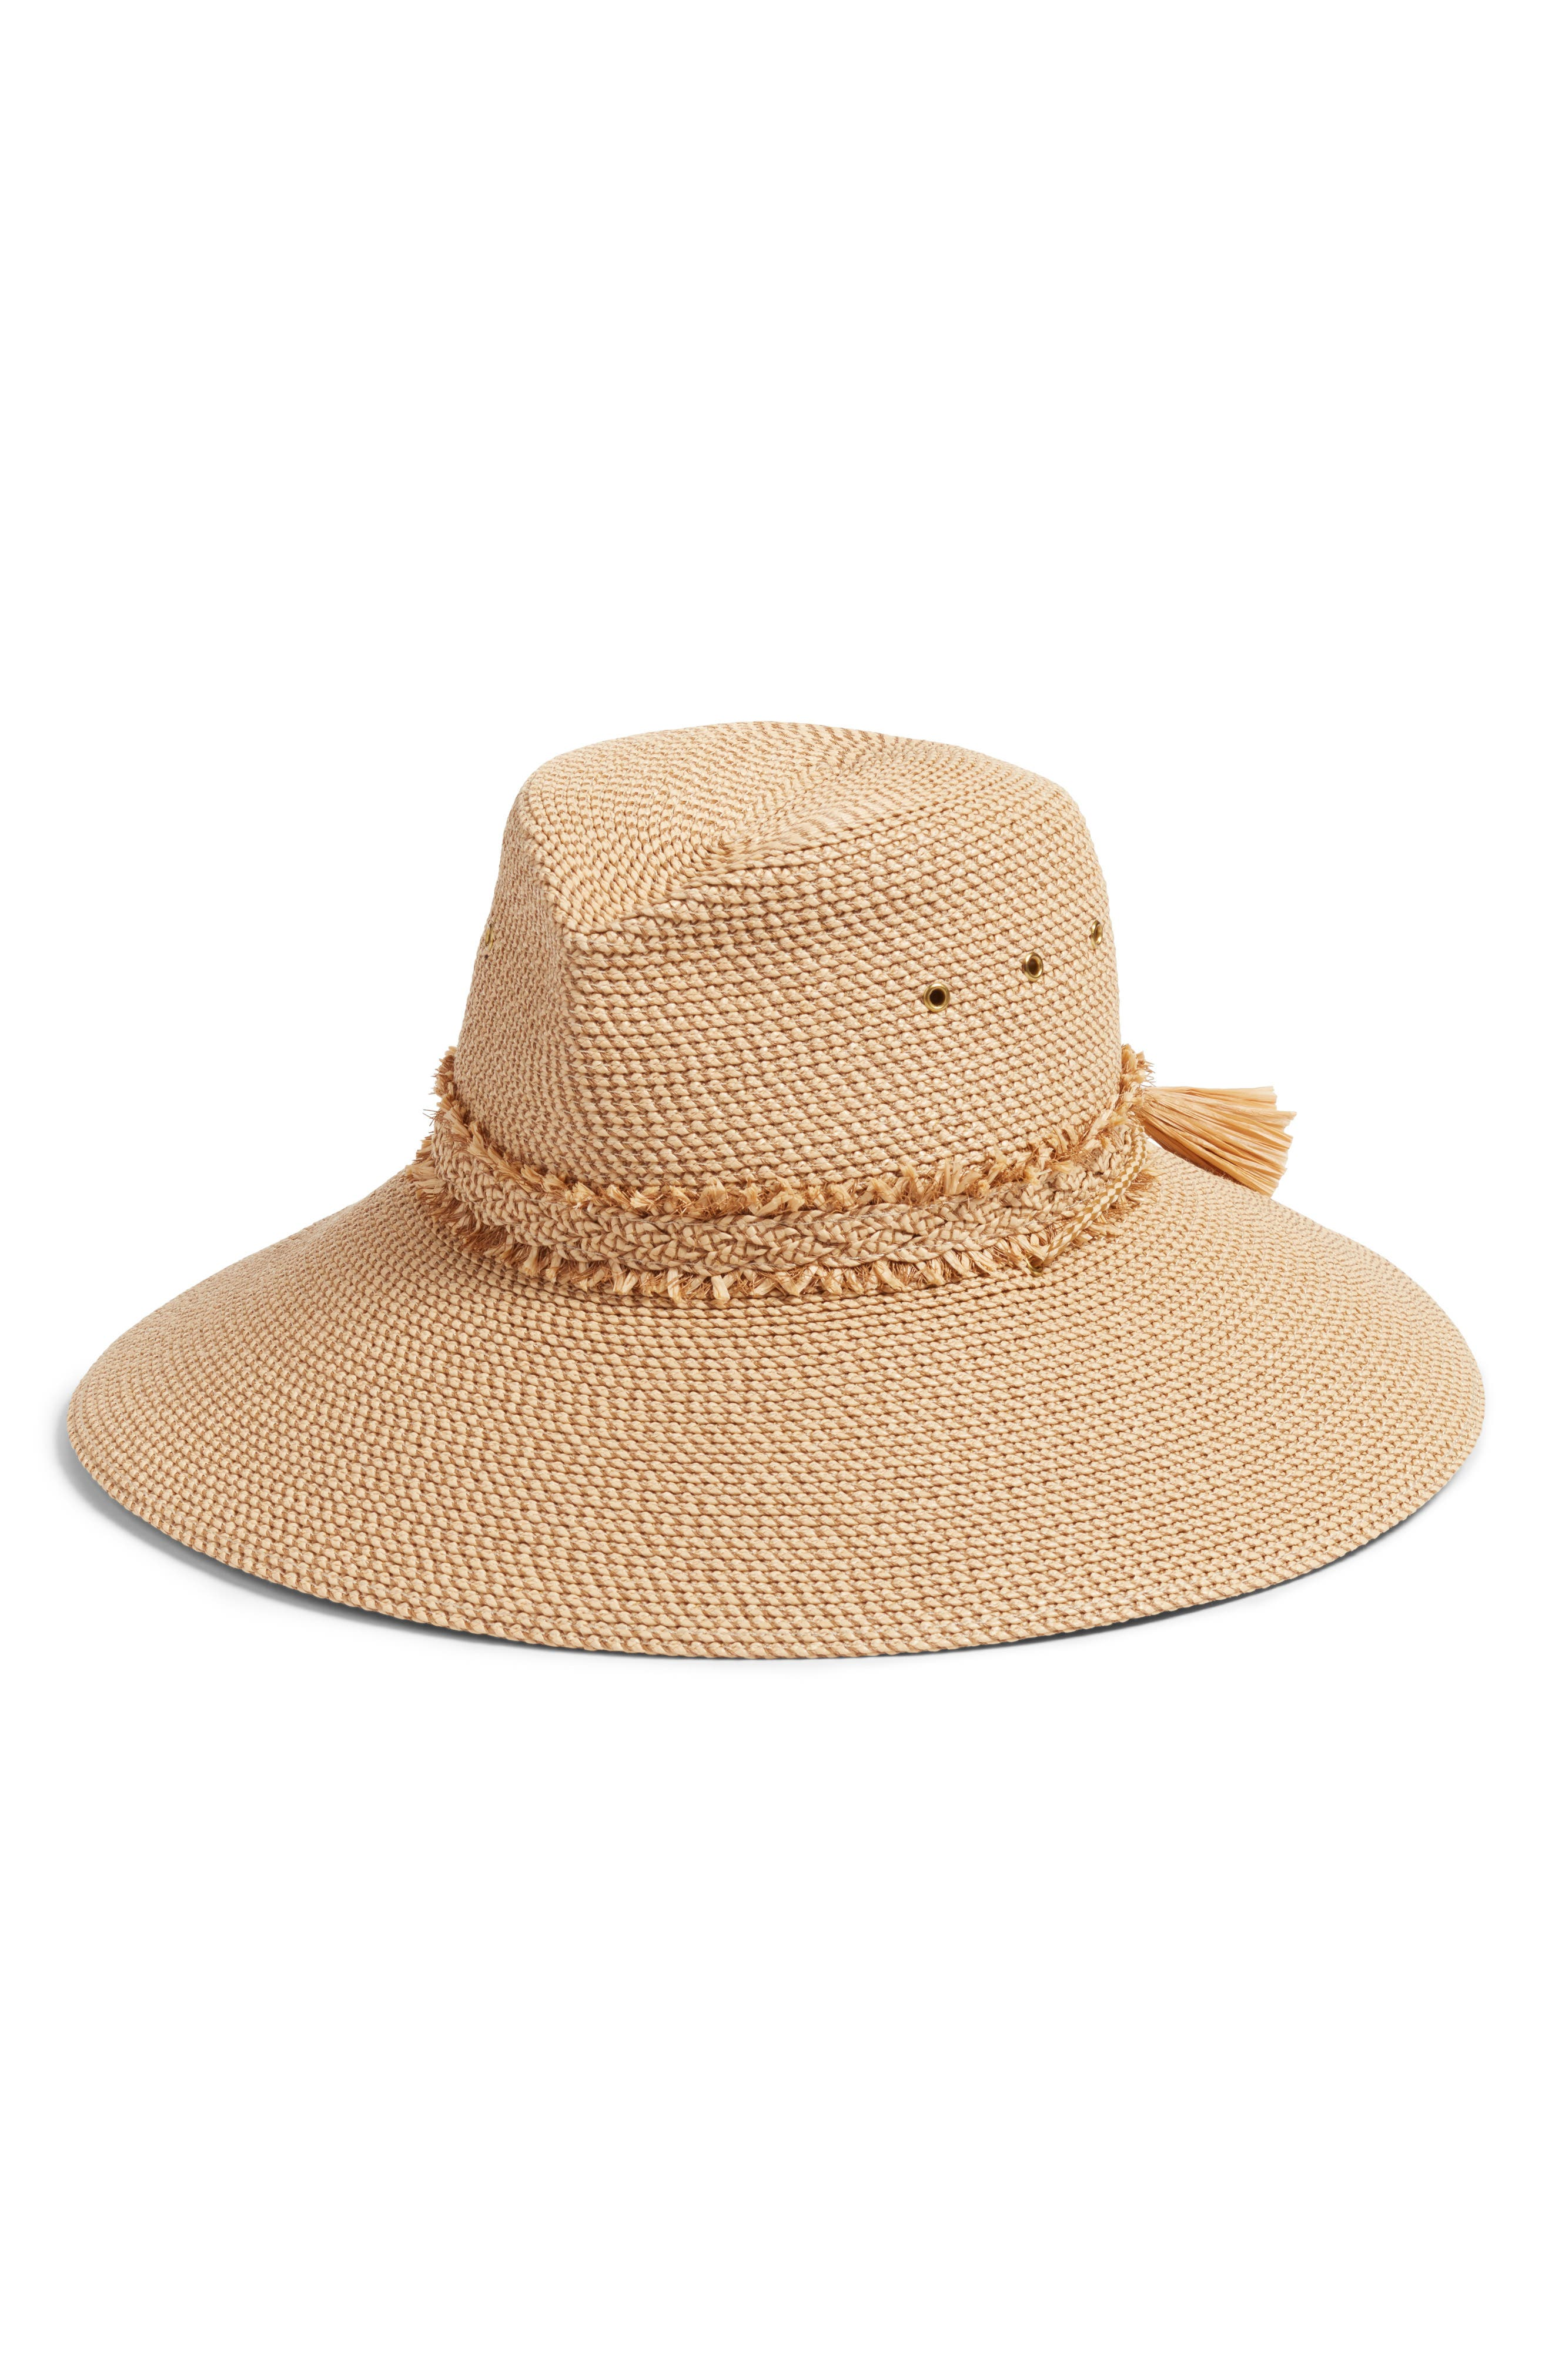 Voyager Squishee<sup>®</sup> Sun Hat,                         Main,                         color, Peanut